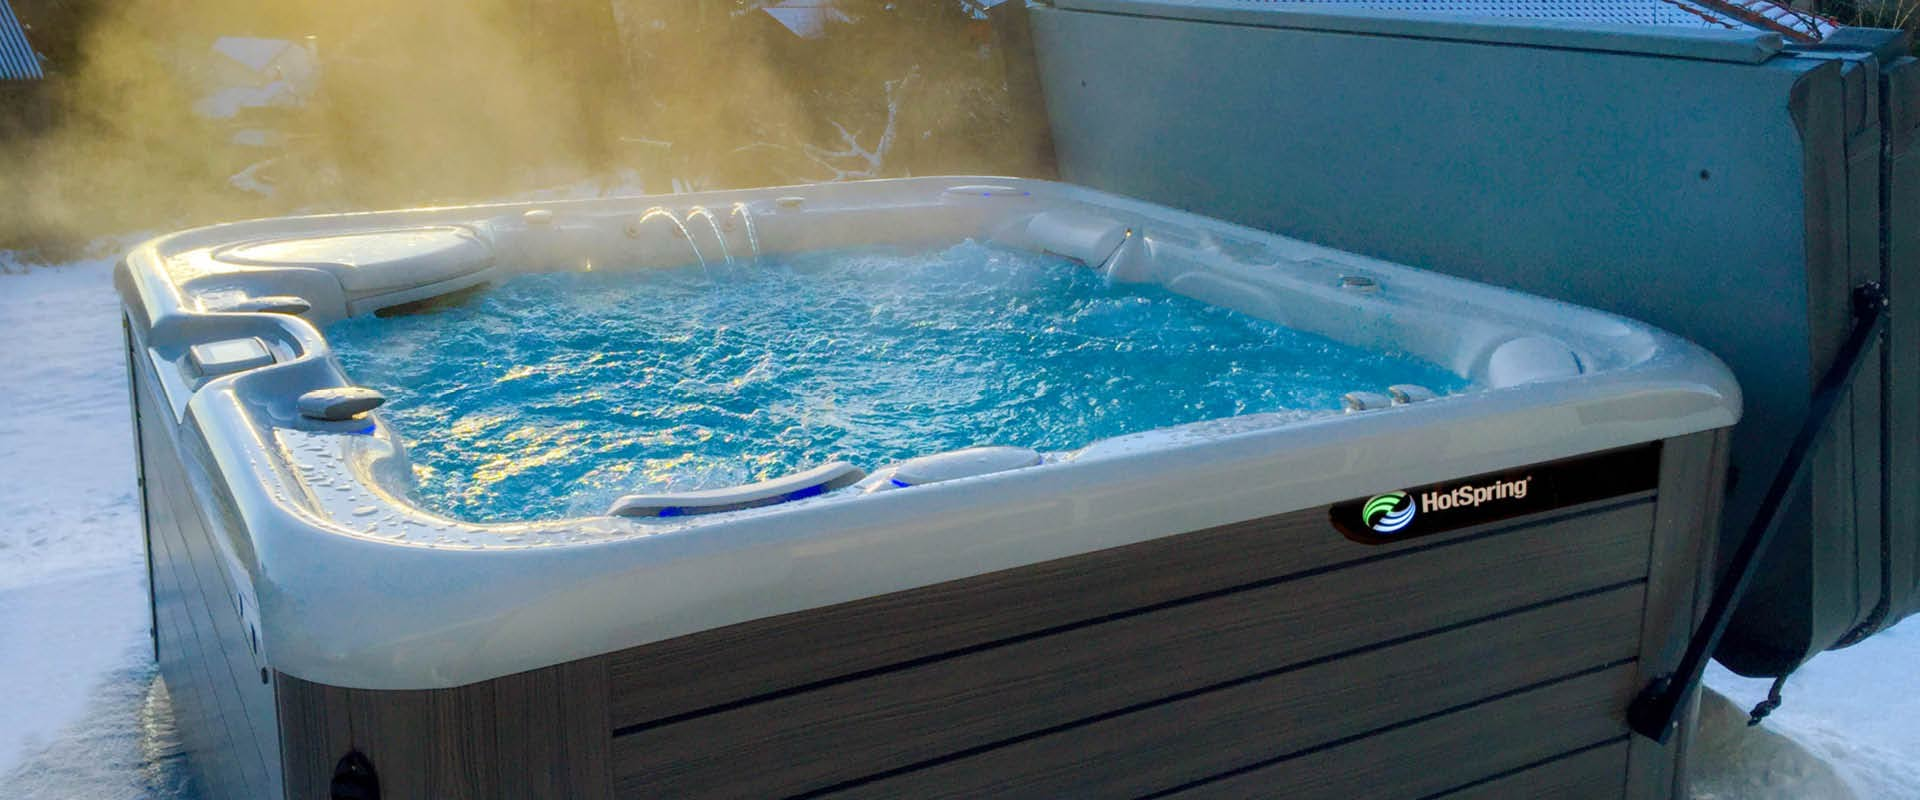 Jacuzzi Pool Design Why Hot Spring Is The 1 Selling Hot Tub Worldwide